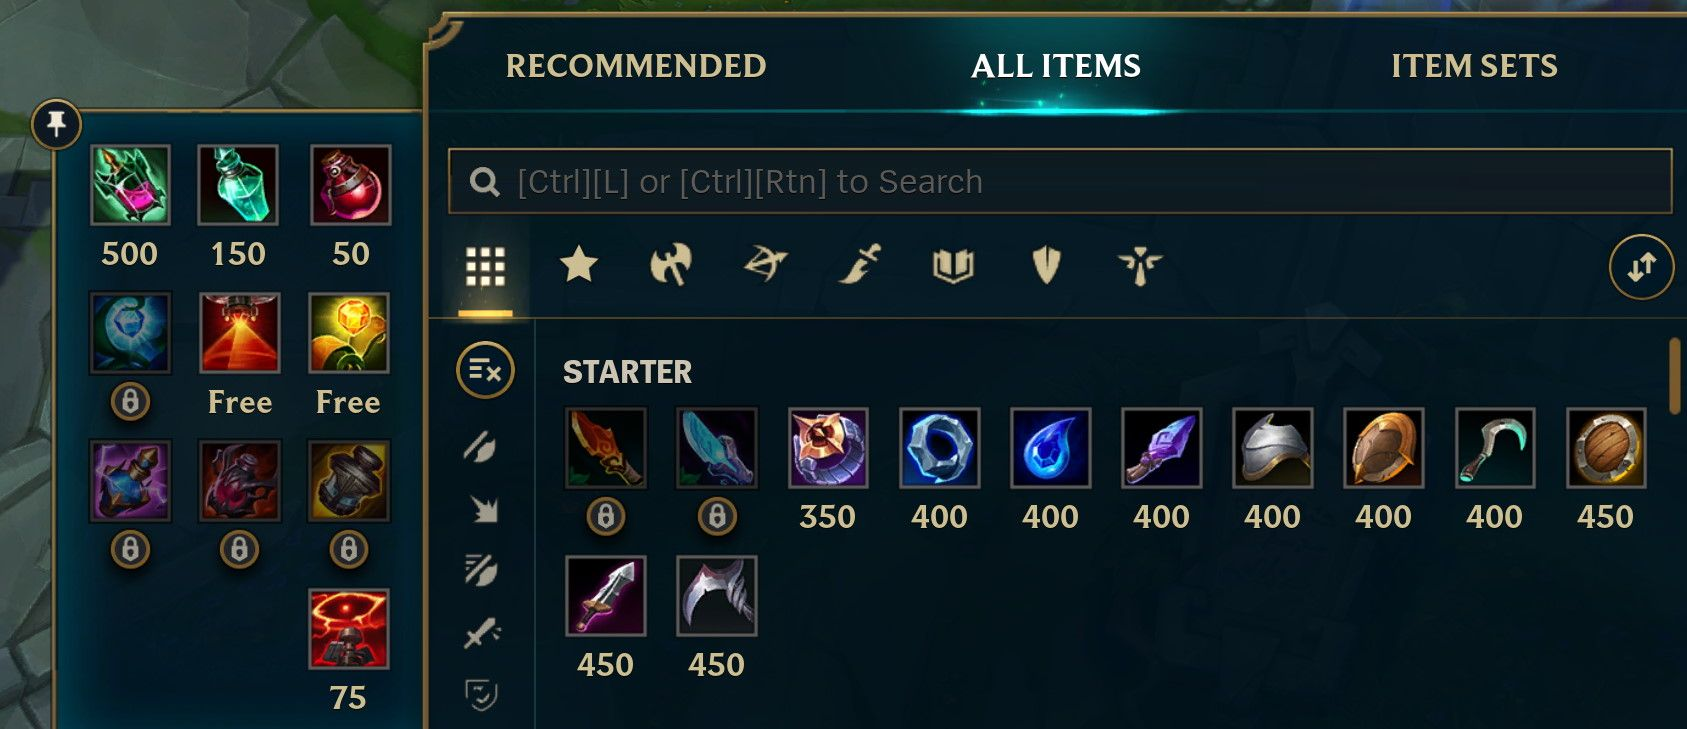 Starter items in the League of Legends shop including potions.